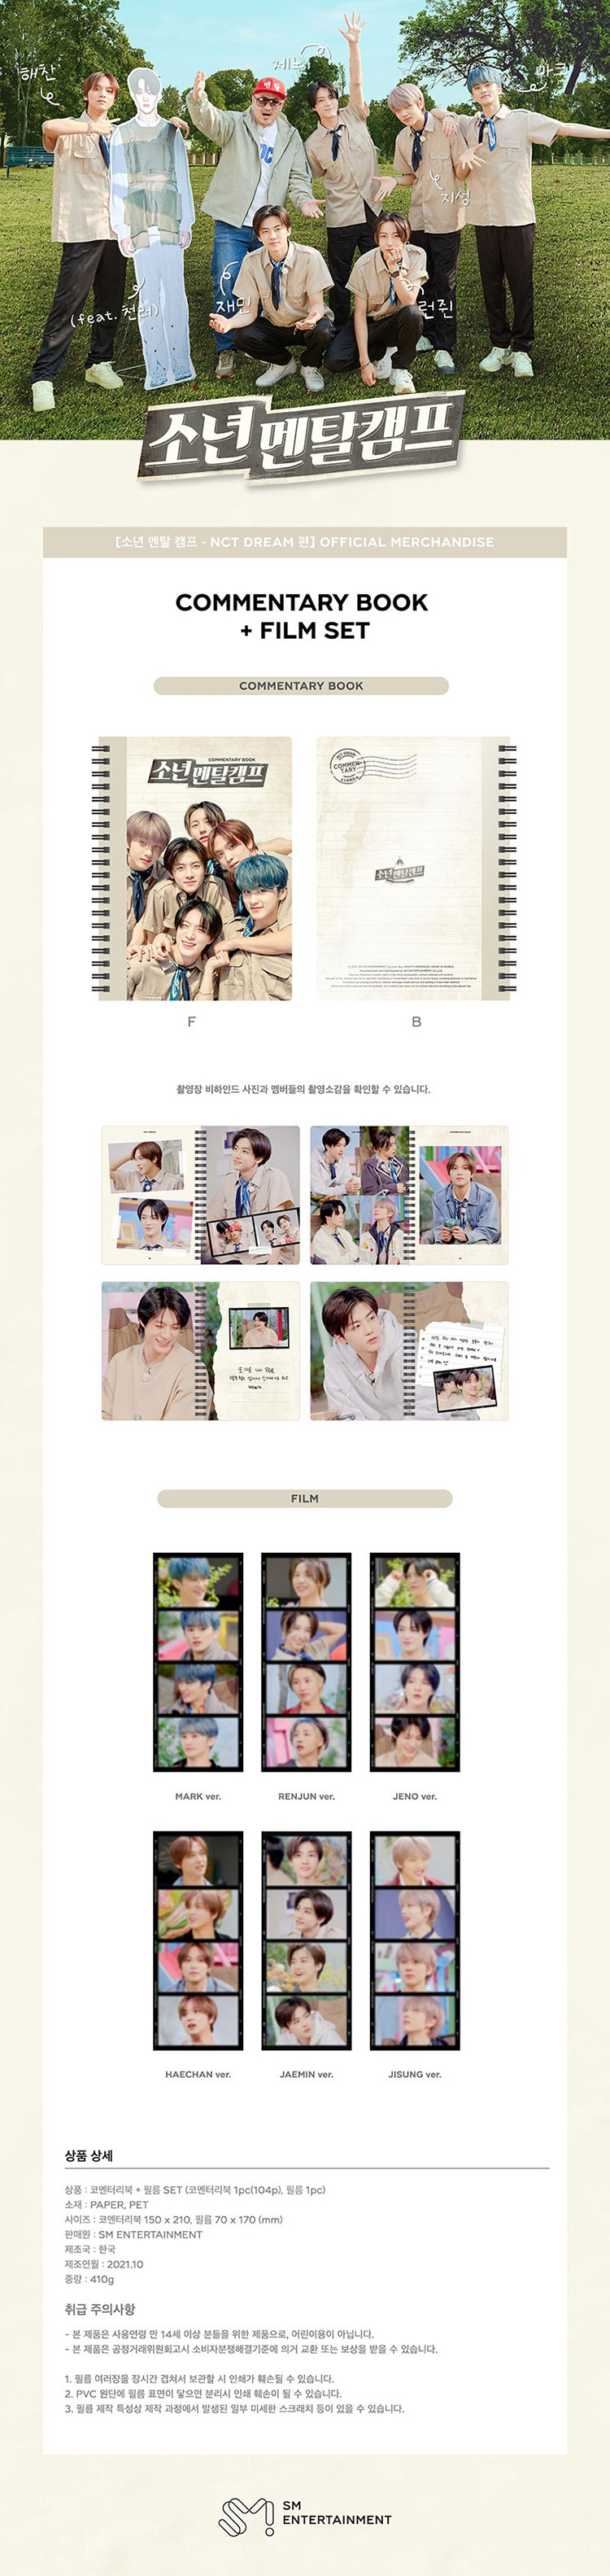 NCT DREAM - Commentary Book and Film Set